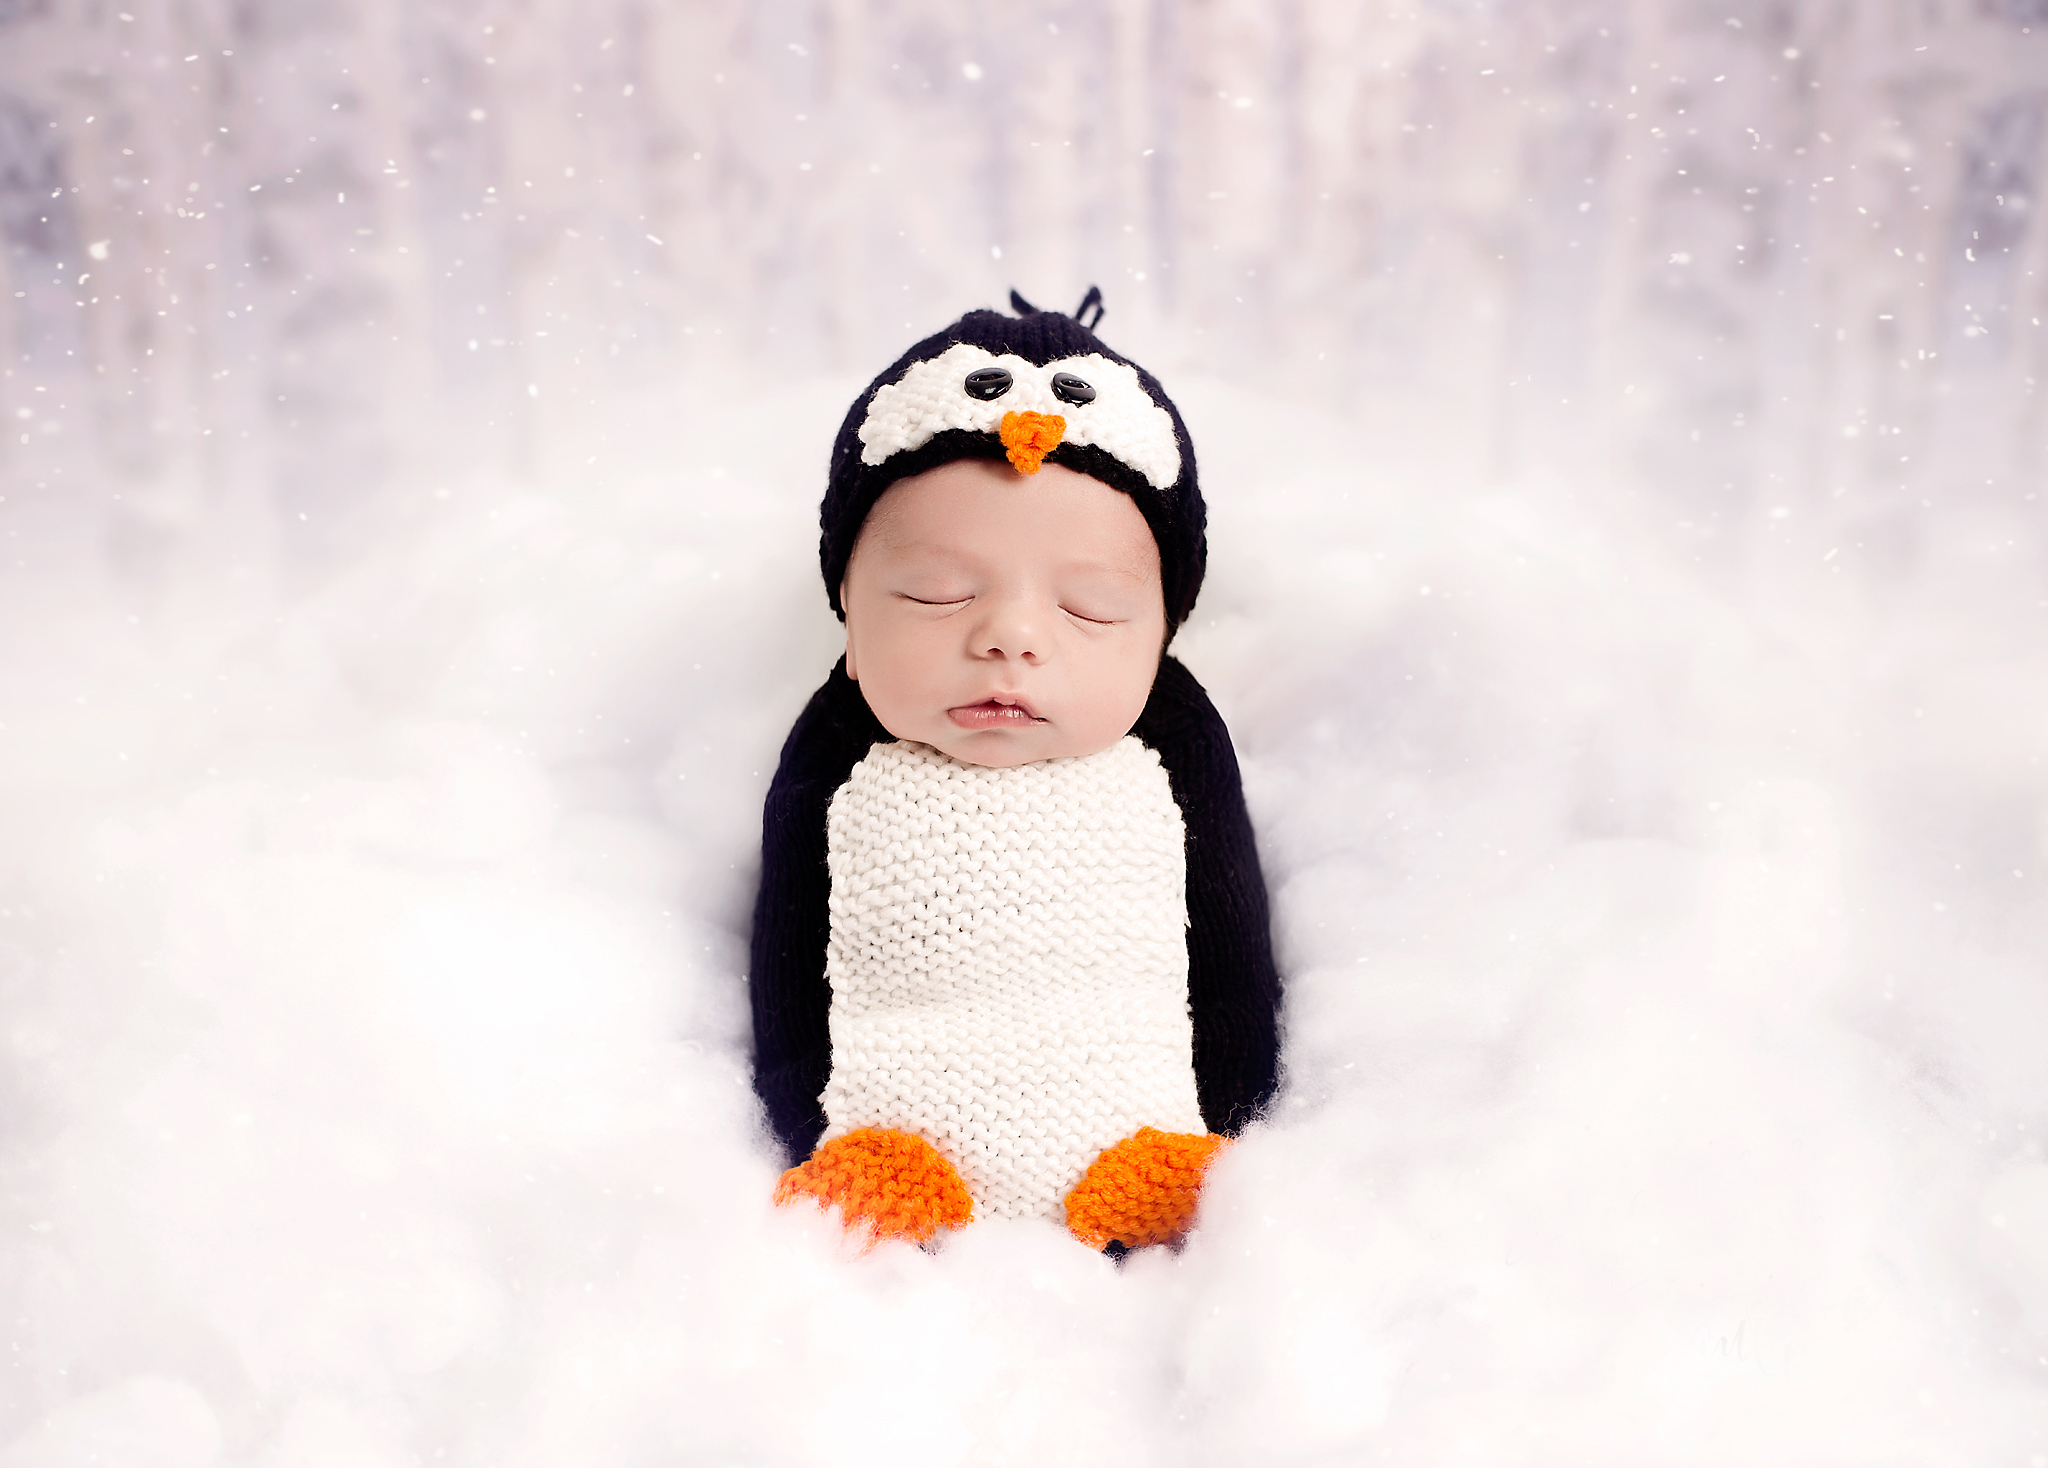 Poppy Penguin Knit Pattern - These 27 knitting patterns for babies range from diaper covers, booties, blankets, to hats and headbands. #knittingpatterns #babyknittingpatterns #adorableknittingpatterns